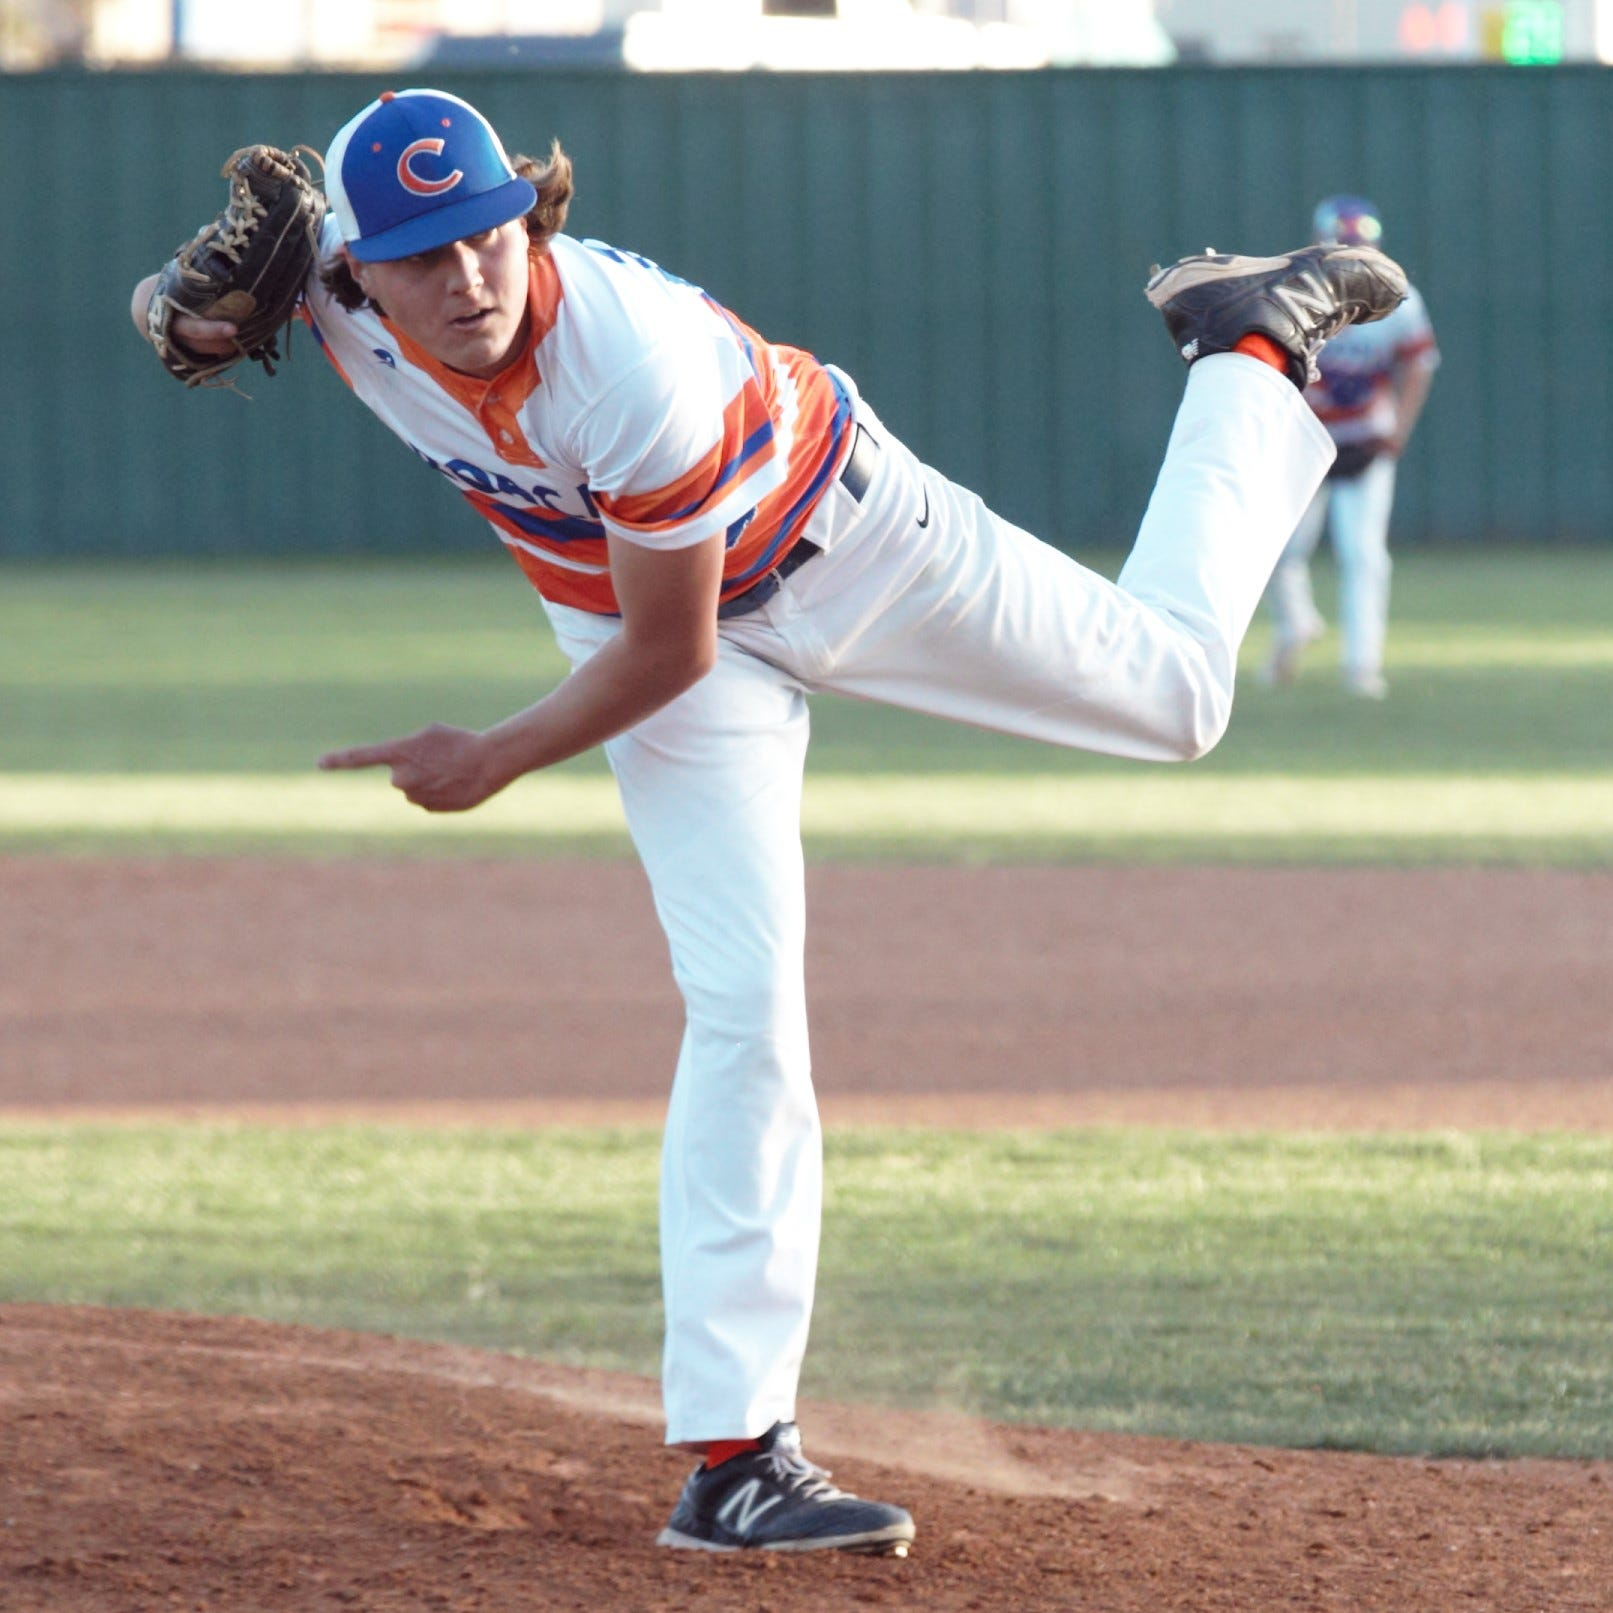 San Angelo Central's Neslage throws no-hitter against Abilene